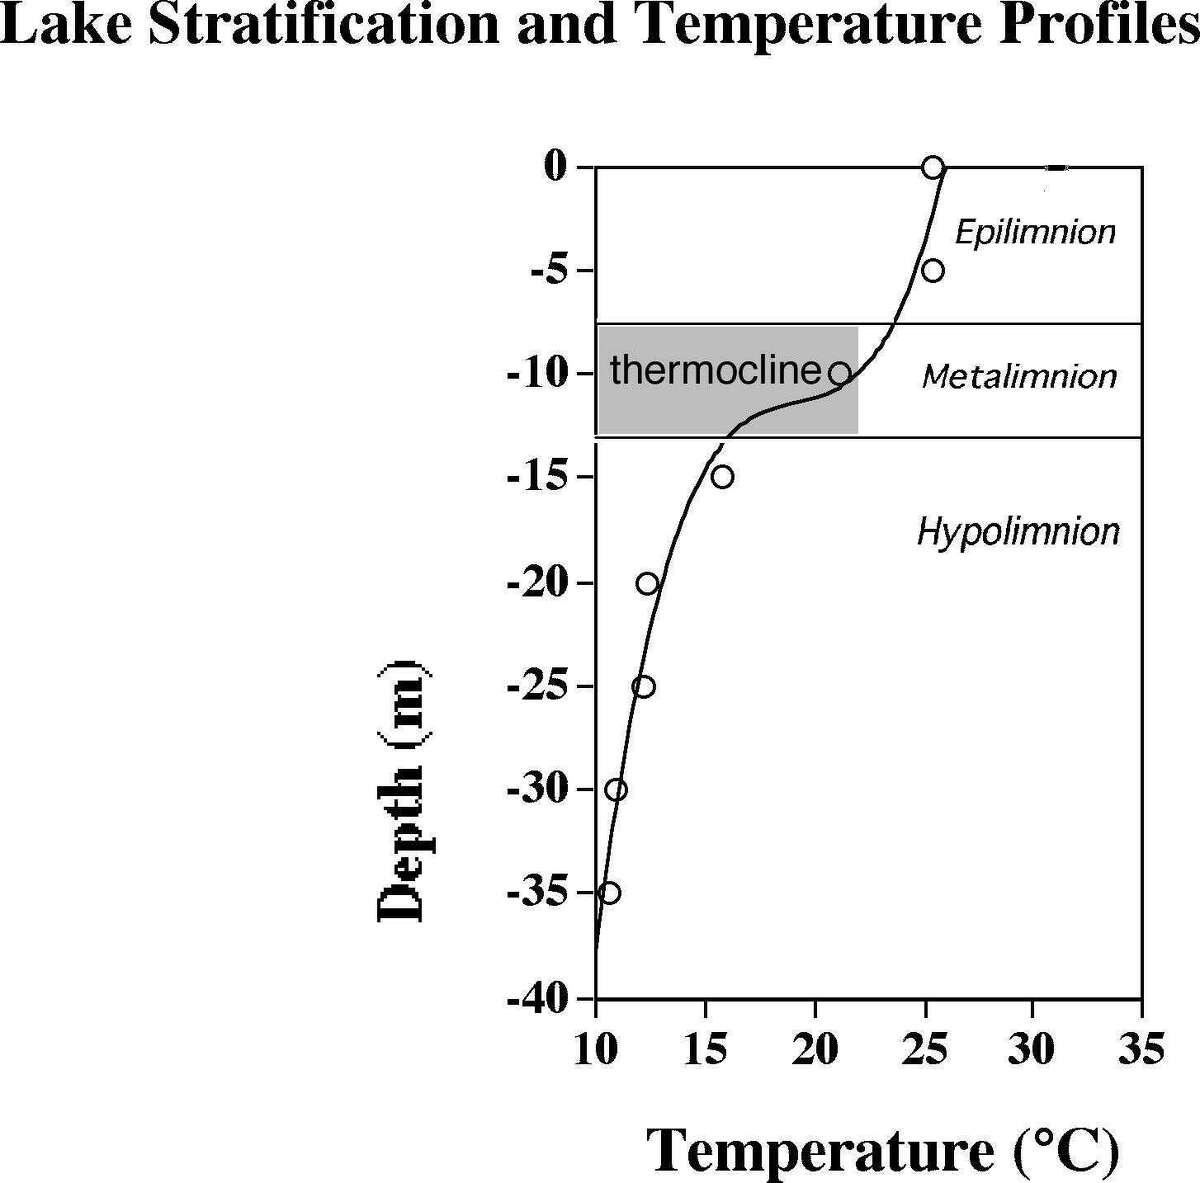 This illustration shows and identifies the different levels of the lake in the heat of the summer.